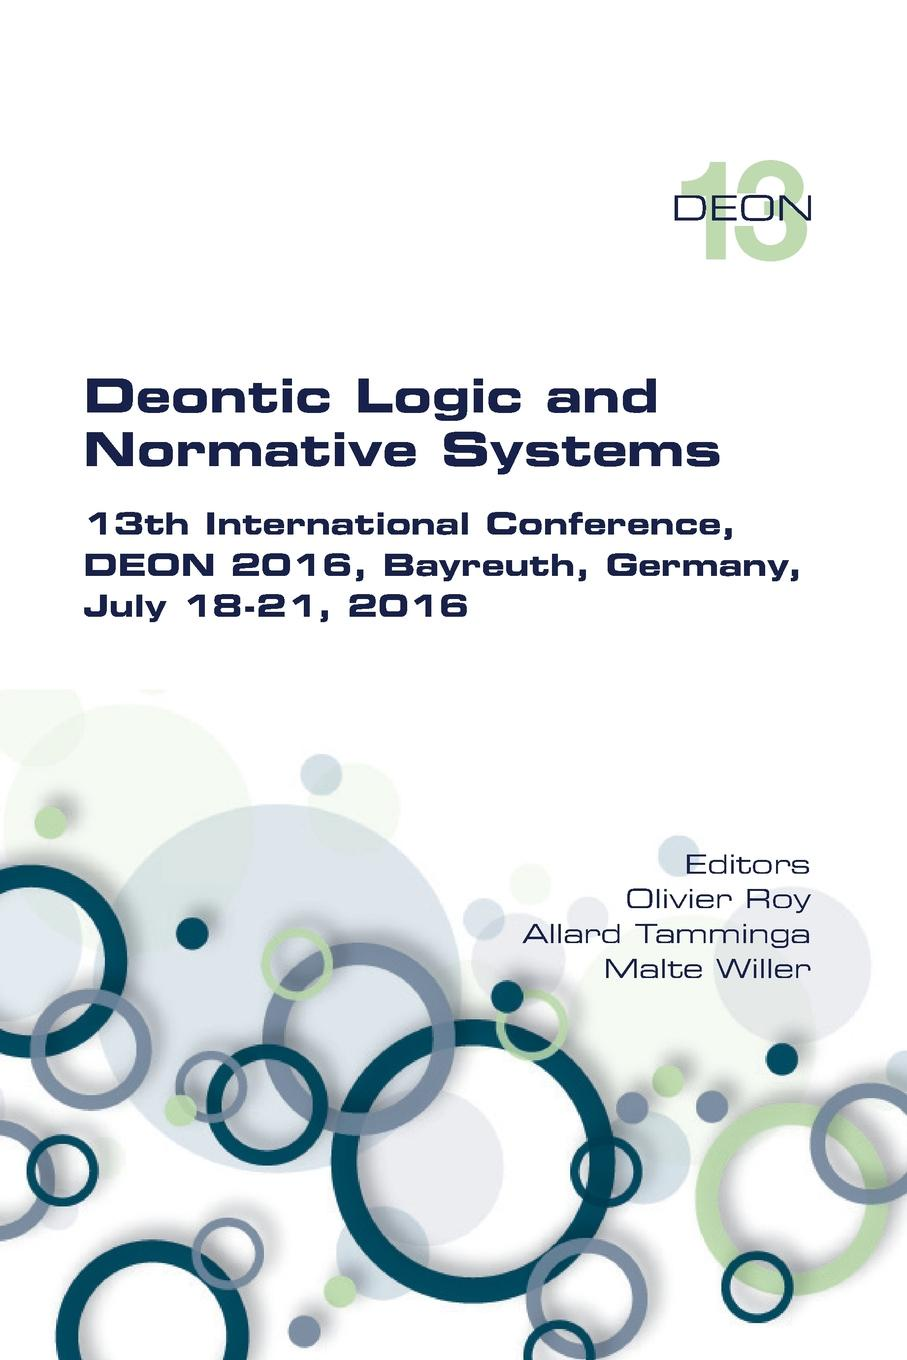 Deontic Logic and Normative Systems. 13th International Conference, DEON 2016 deon meyer surnud enne surma